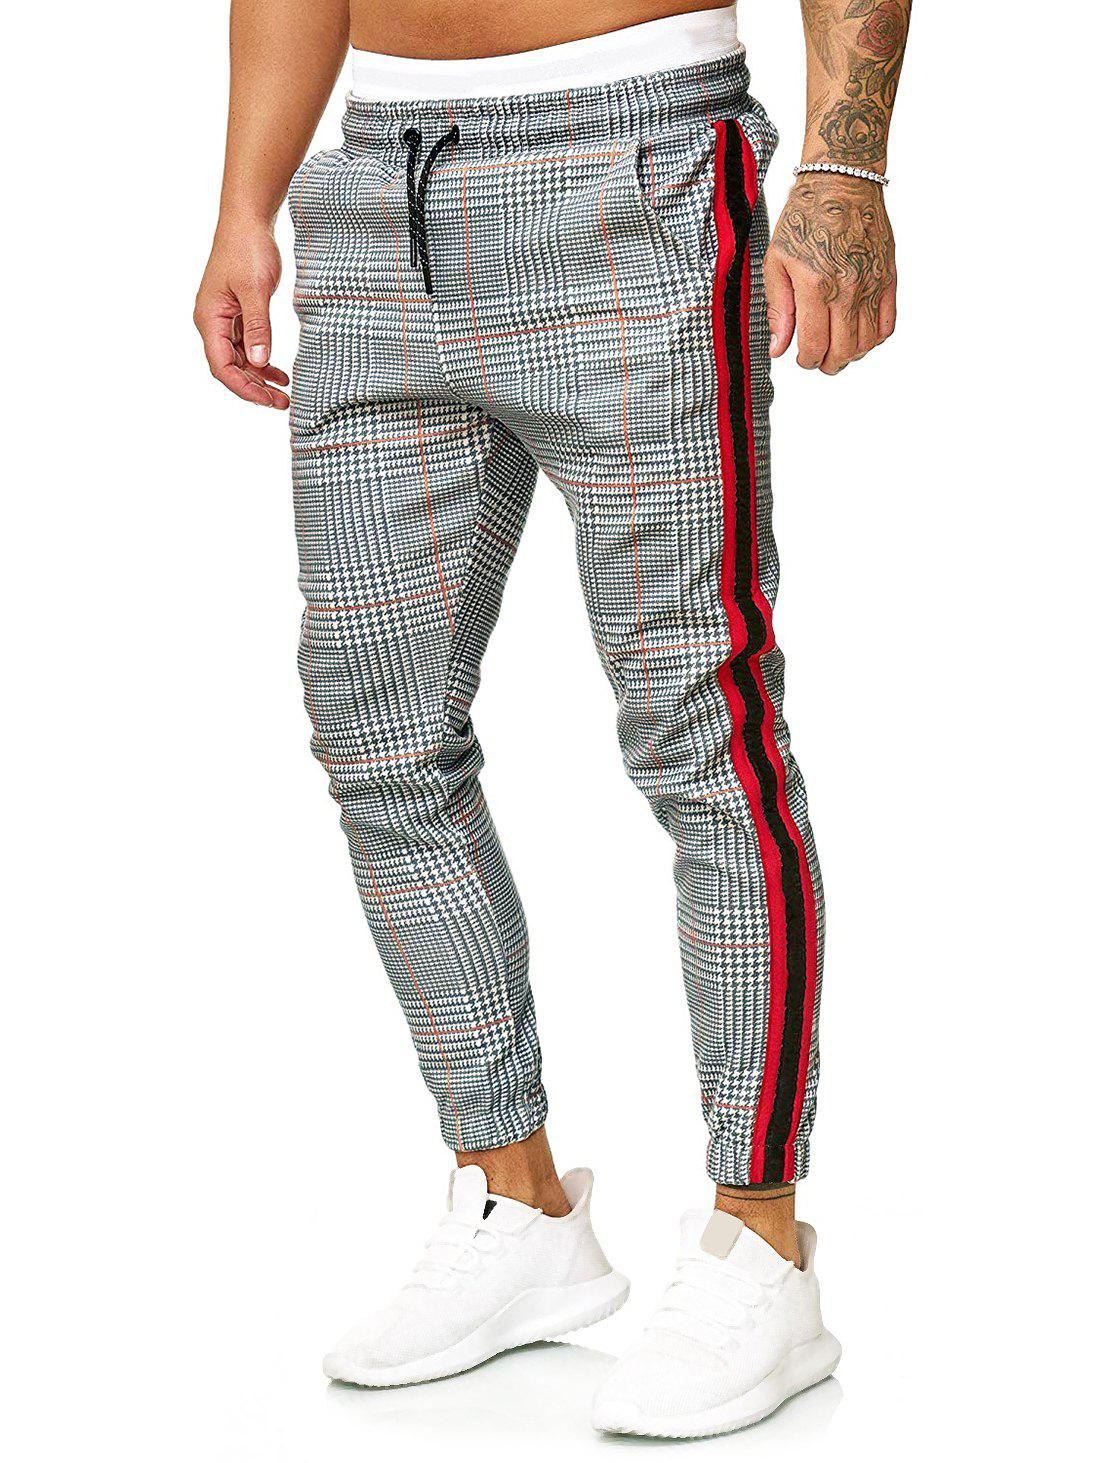 Discount Contrast Striped Spliced Pattern Graphic Print Casual Jogger Pants